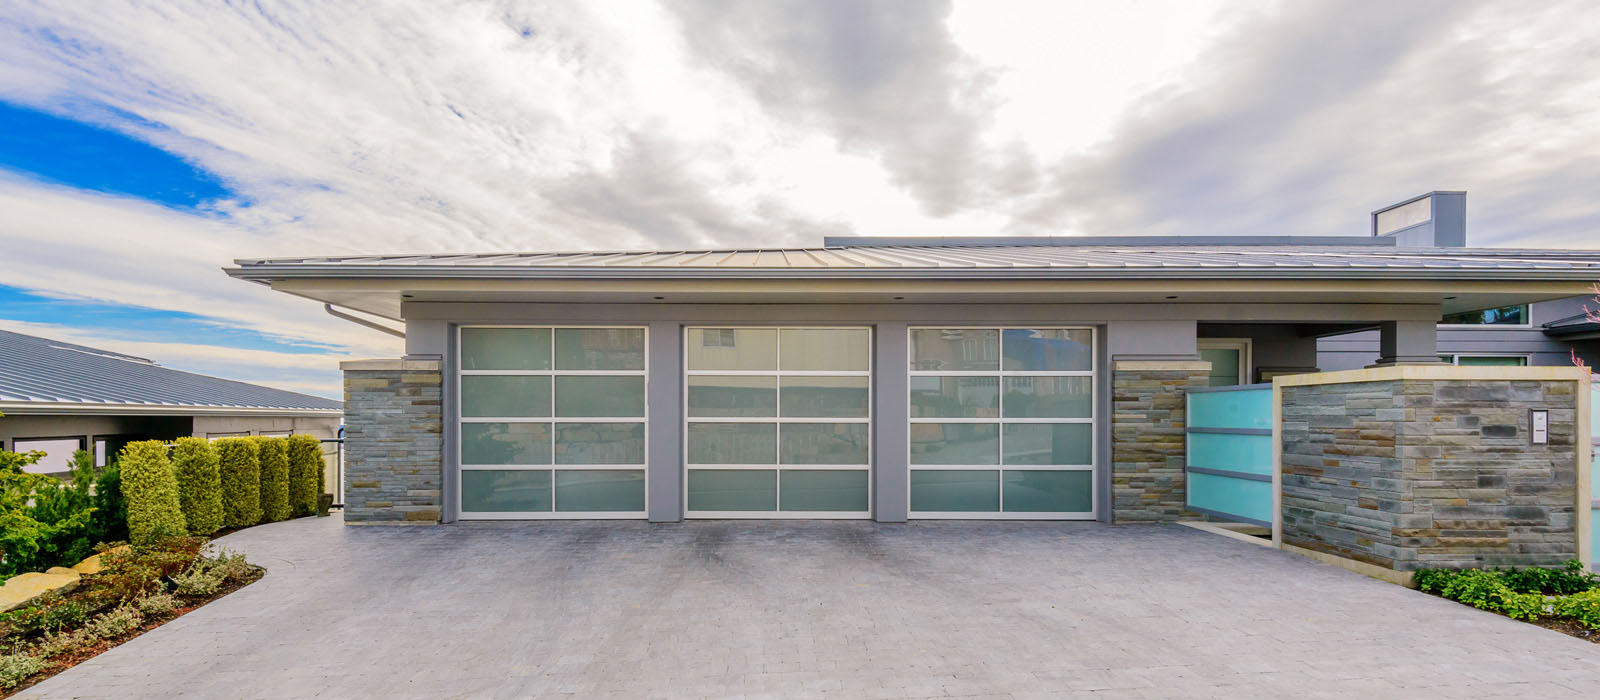 Garage door repair mesa az - Garage Door Repair Mesa